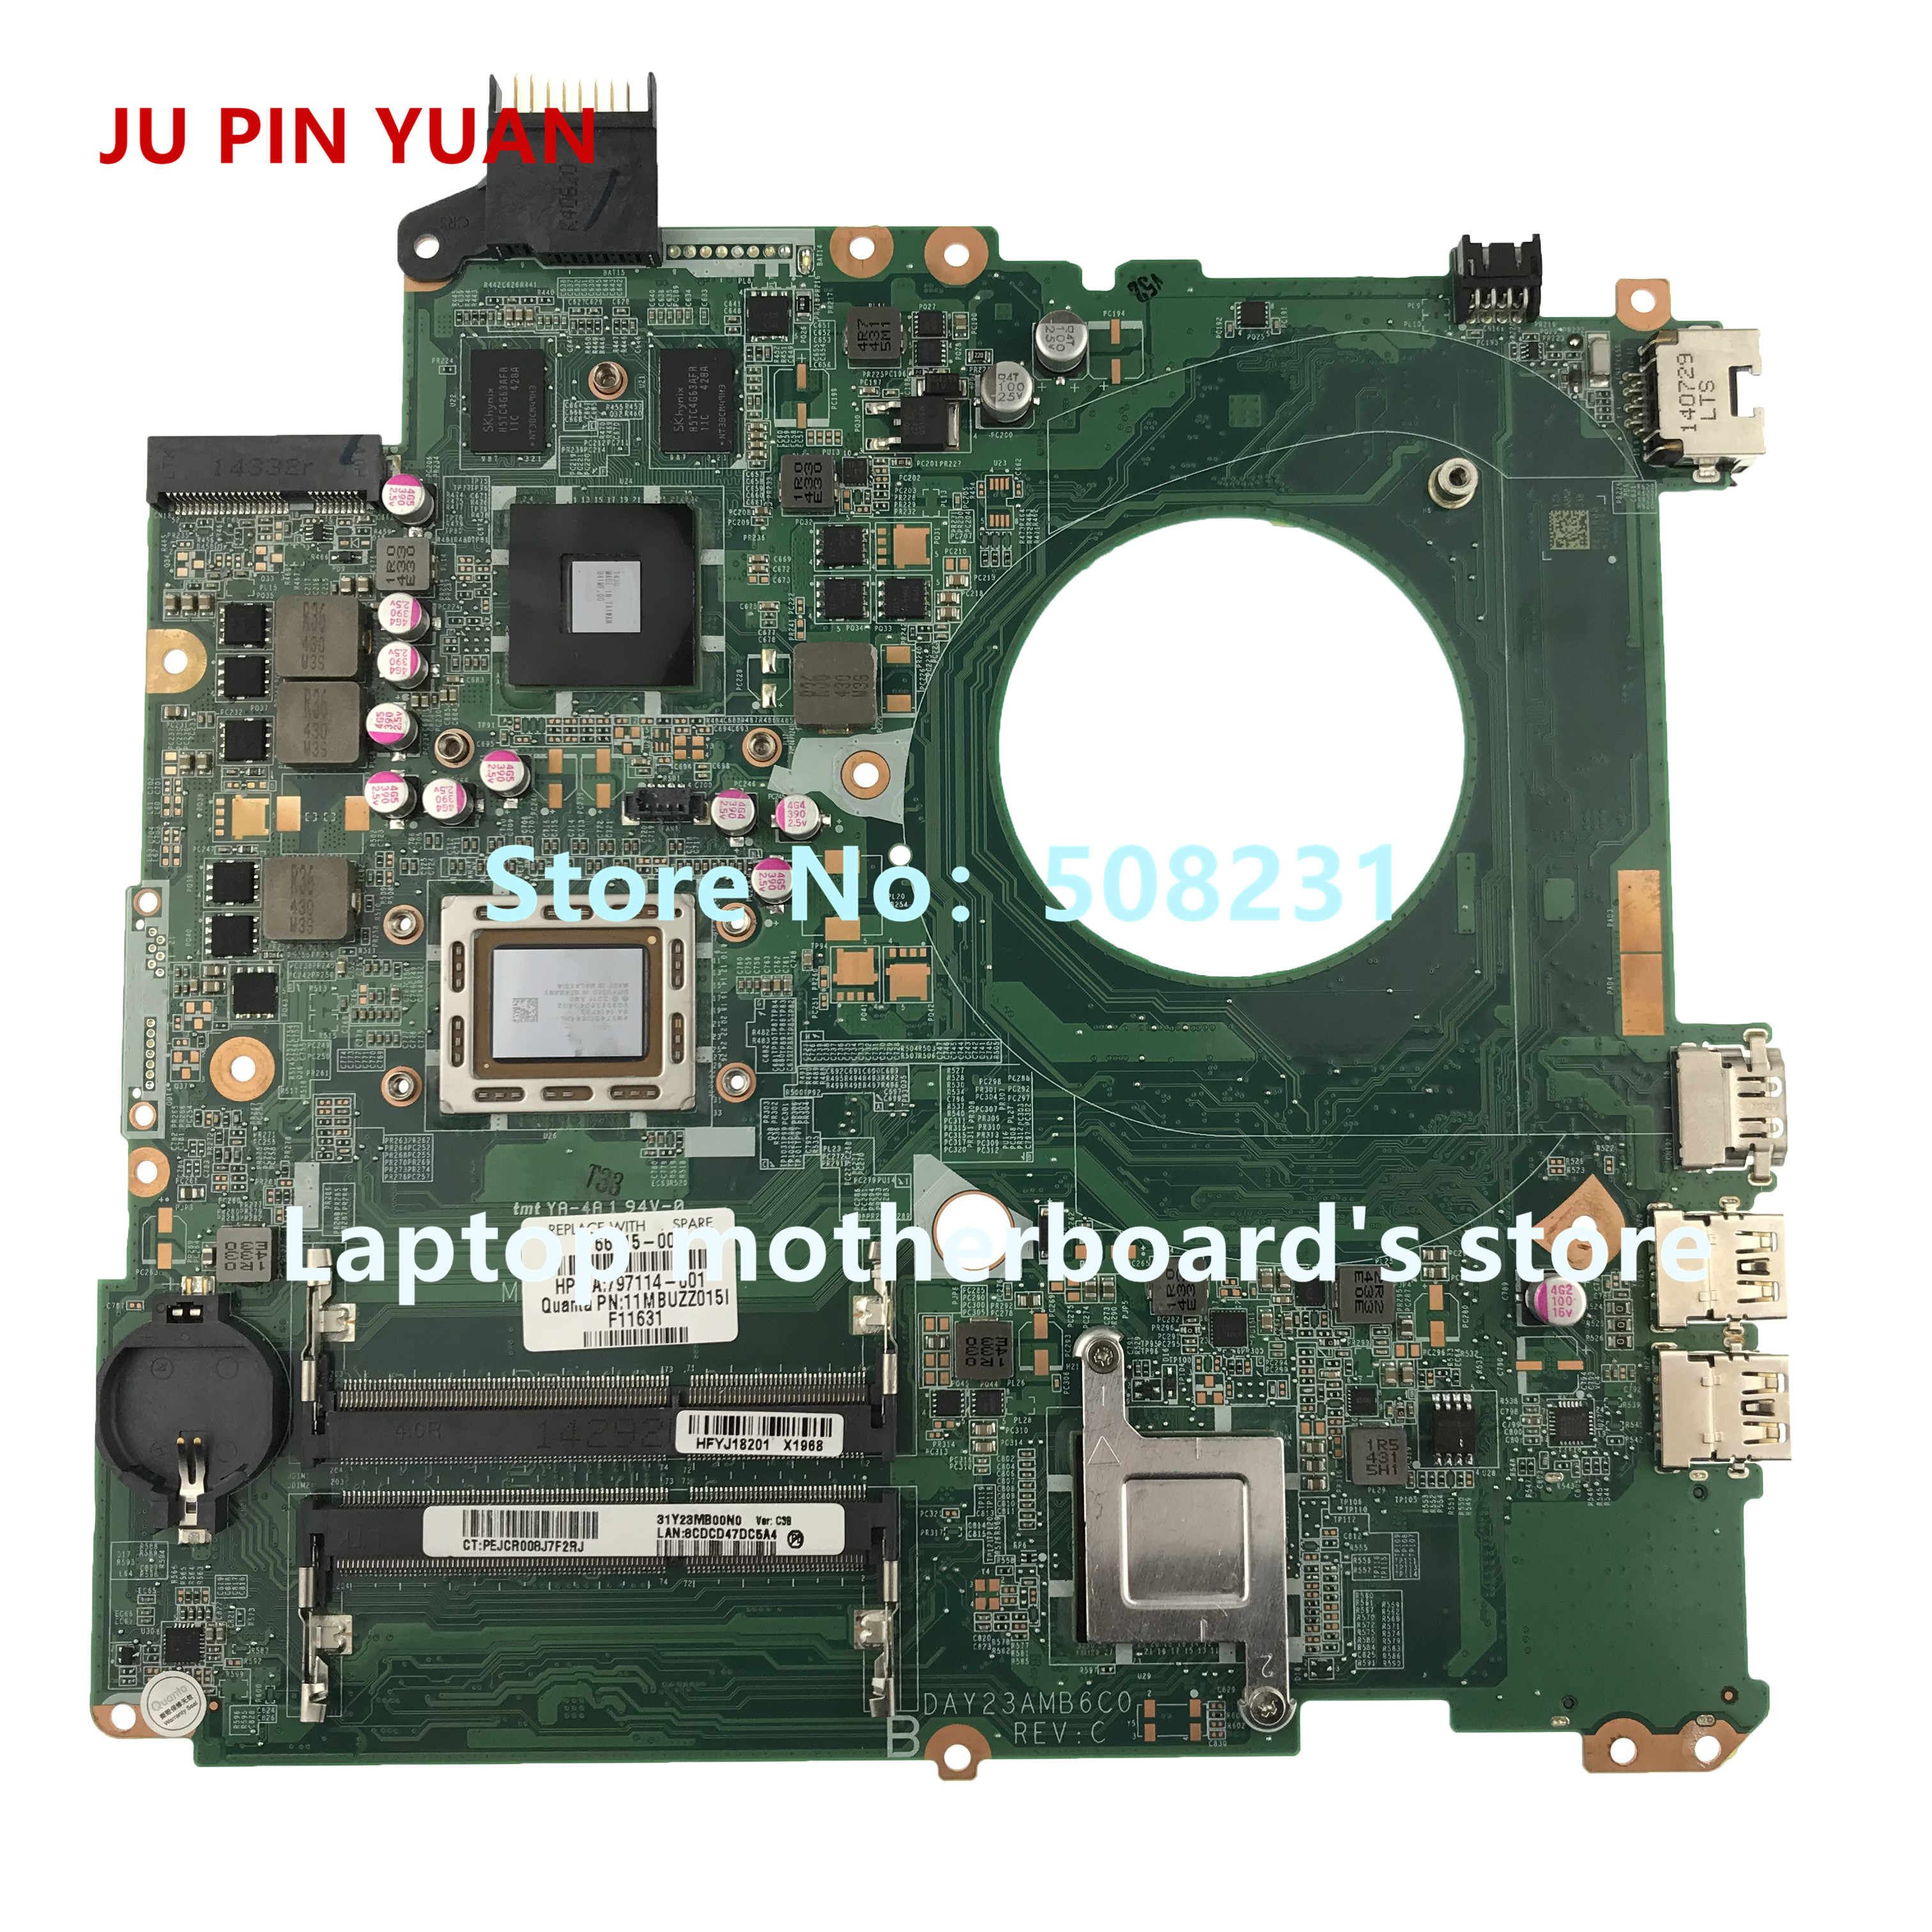 Ju Pin Yuan 766715-501 766715-001 DAY23AMB6F0 Moederbord Voor Hp Pavilion 15Z-P 15-P Laptop Moederbord A10-5745M Volledig getest